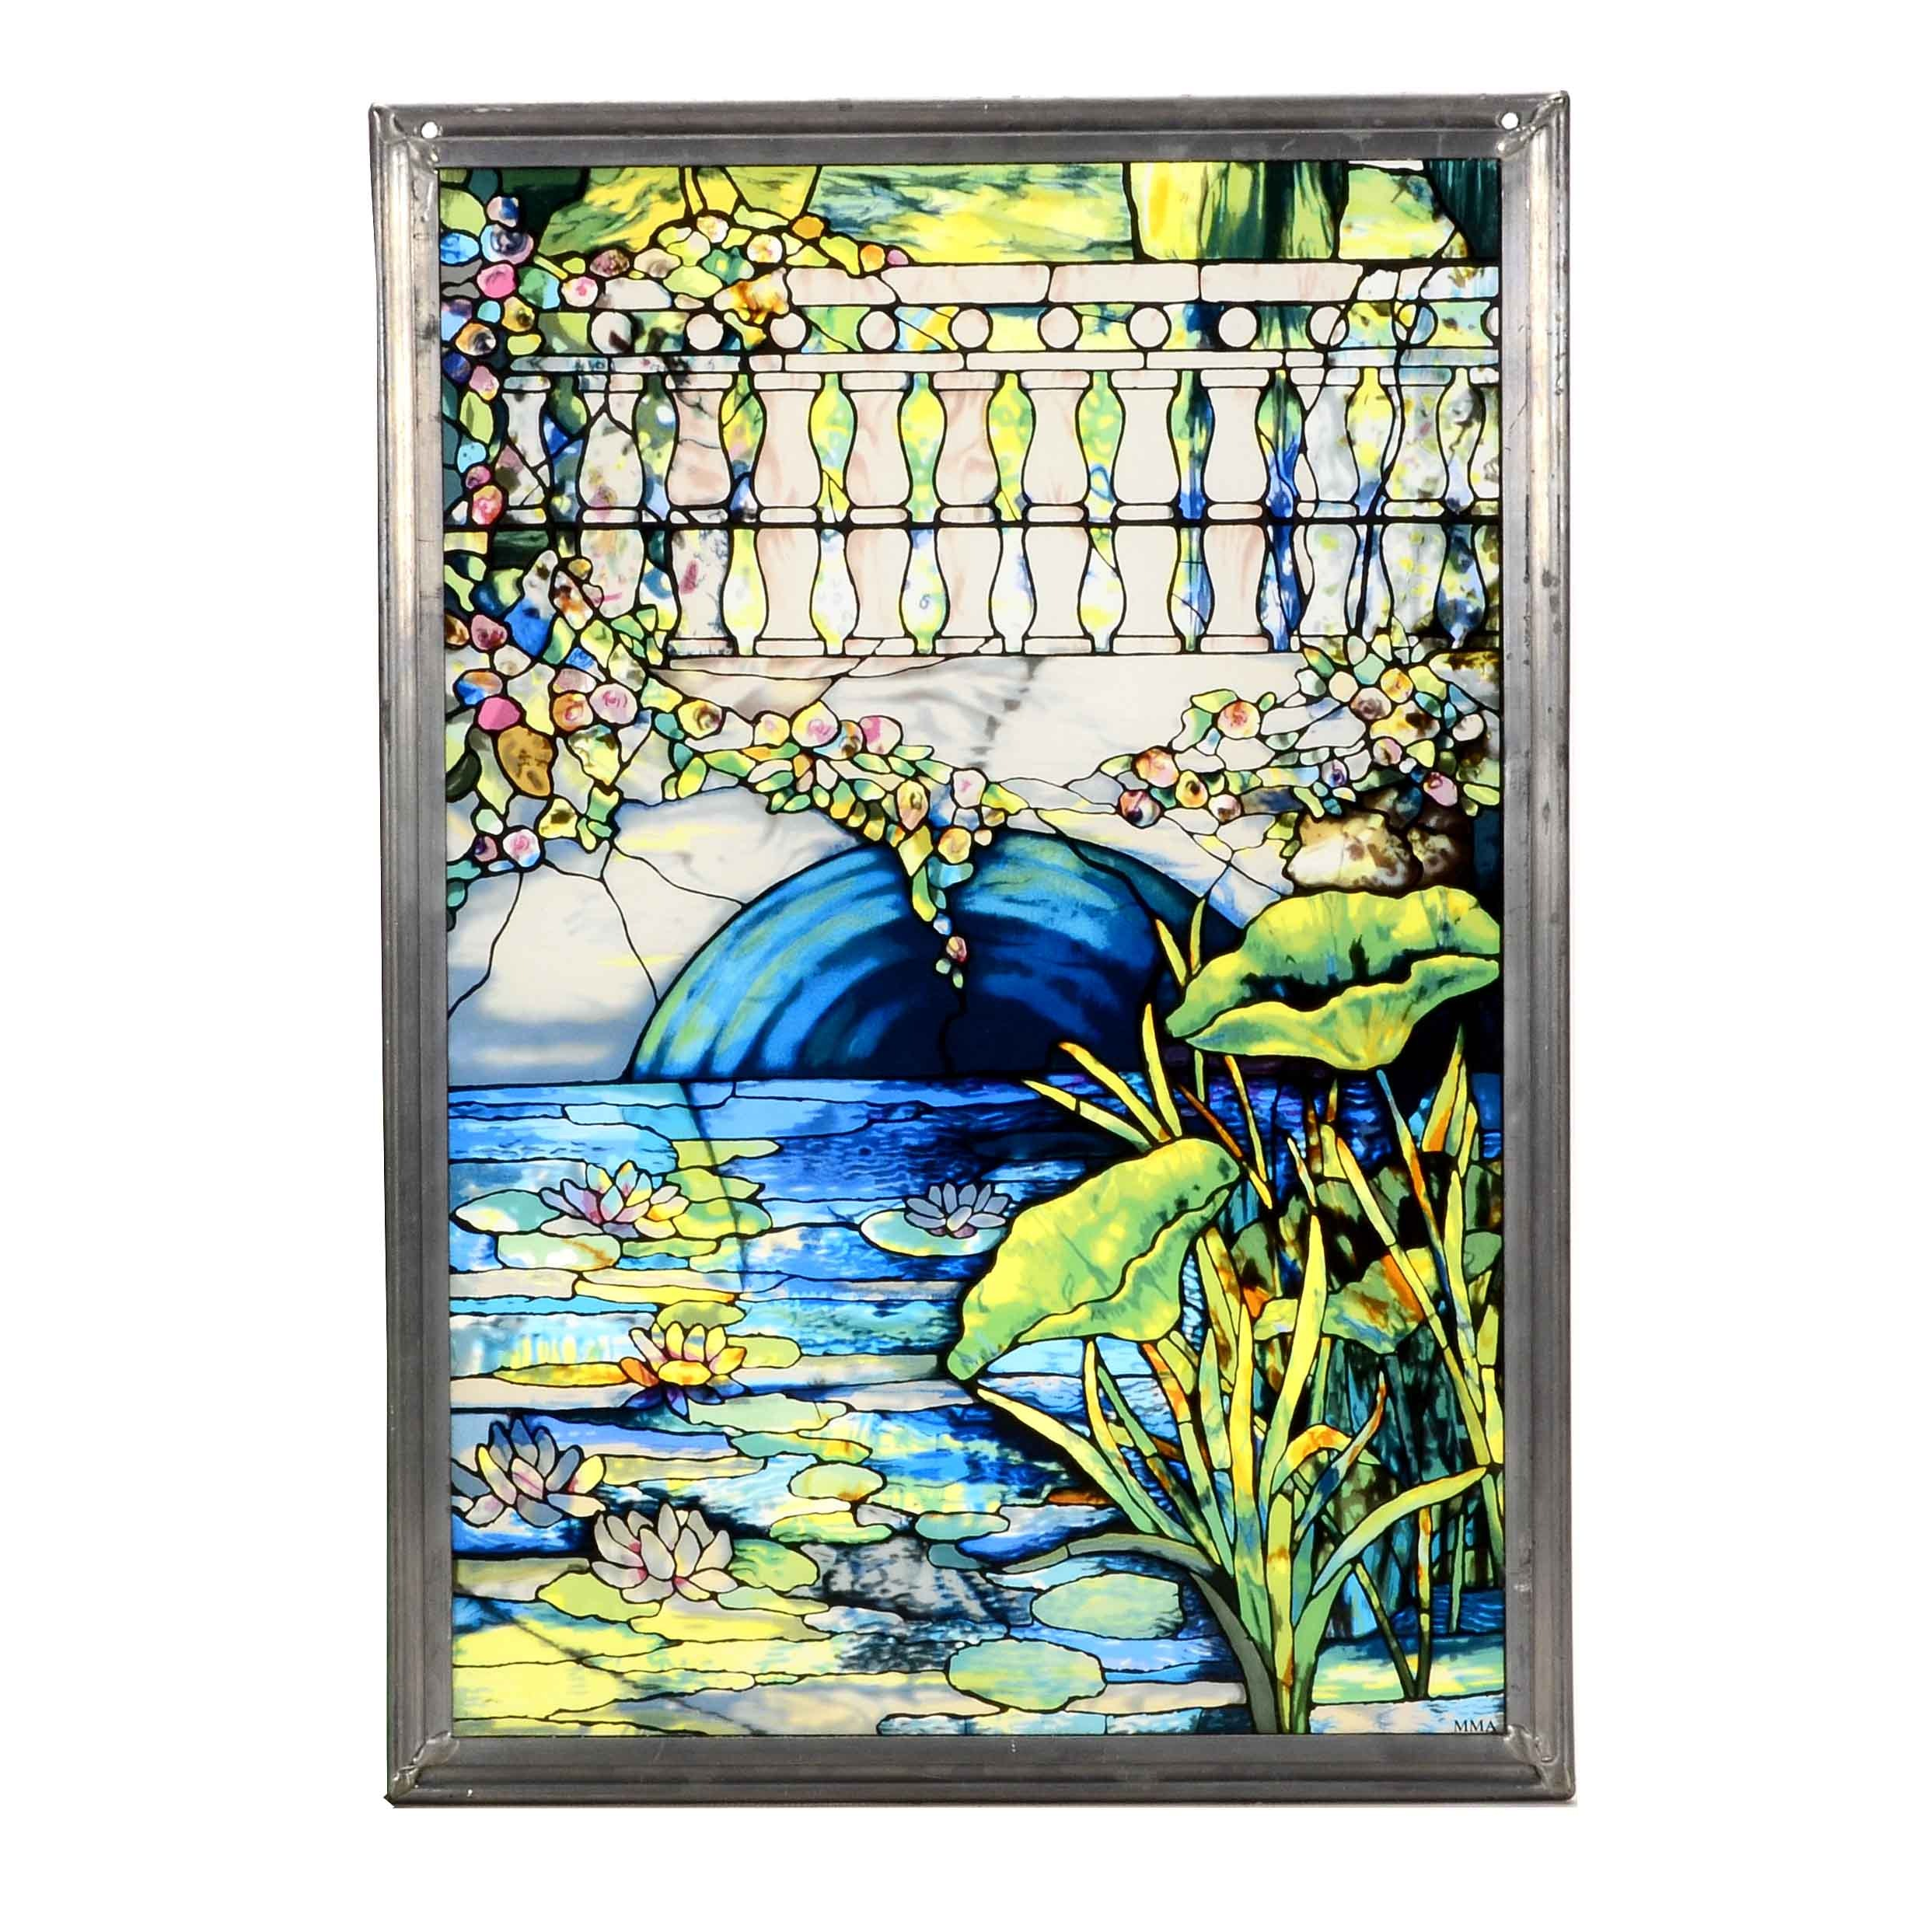 Offset Lithograph on Glass Reproduction After Vincent Van Gogh